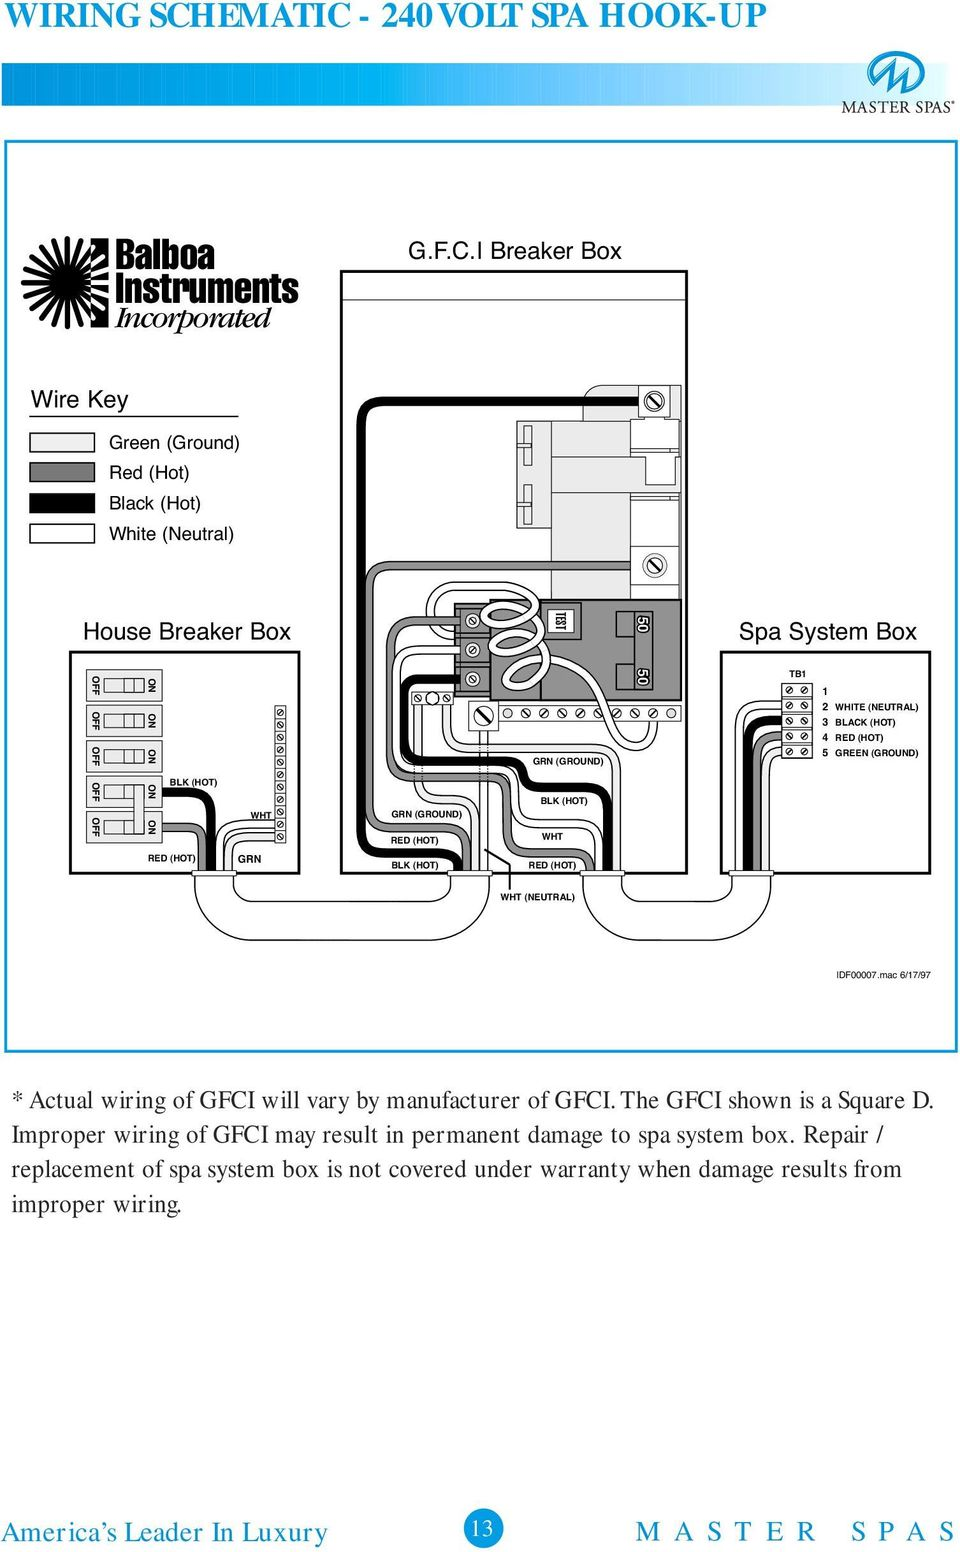 O W N E R S M A U L Pdf Garden Spa Wiring Diagram 240 Volt Hook Up Balboa Instruments Incorporated Gfc